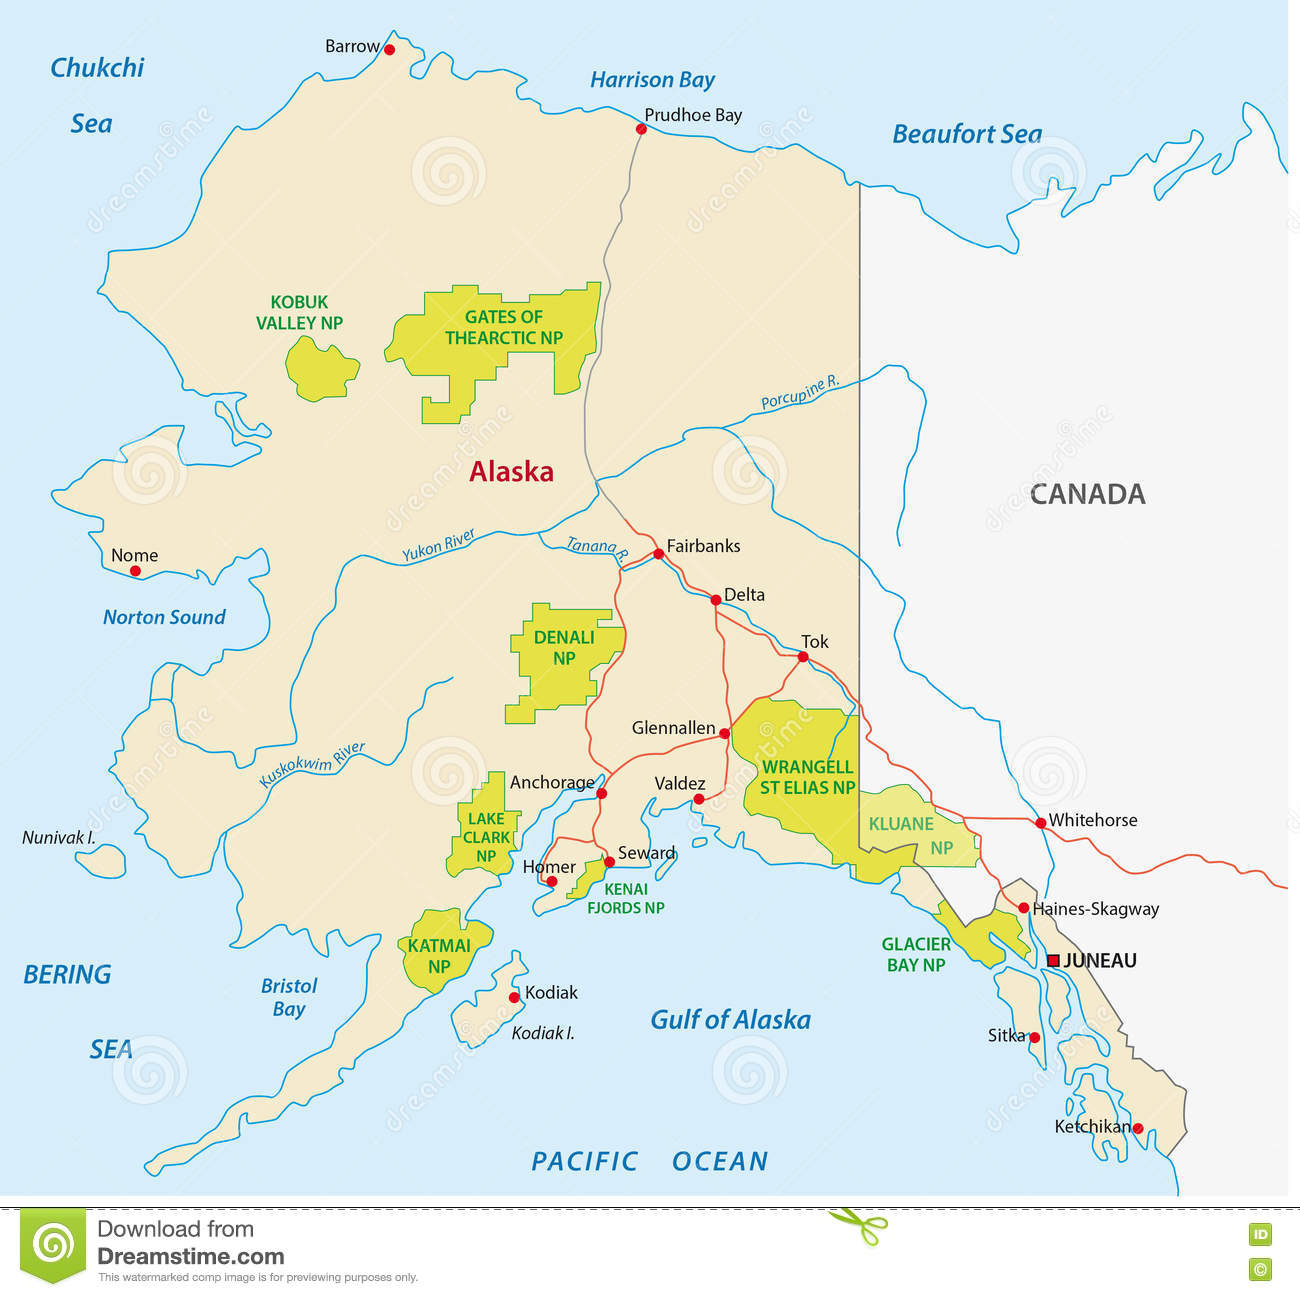 Map Of American State Parks on map of american indian reservations, map of american military bases, map of american mountain ranges, map of american interstates,